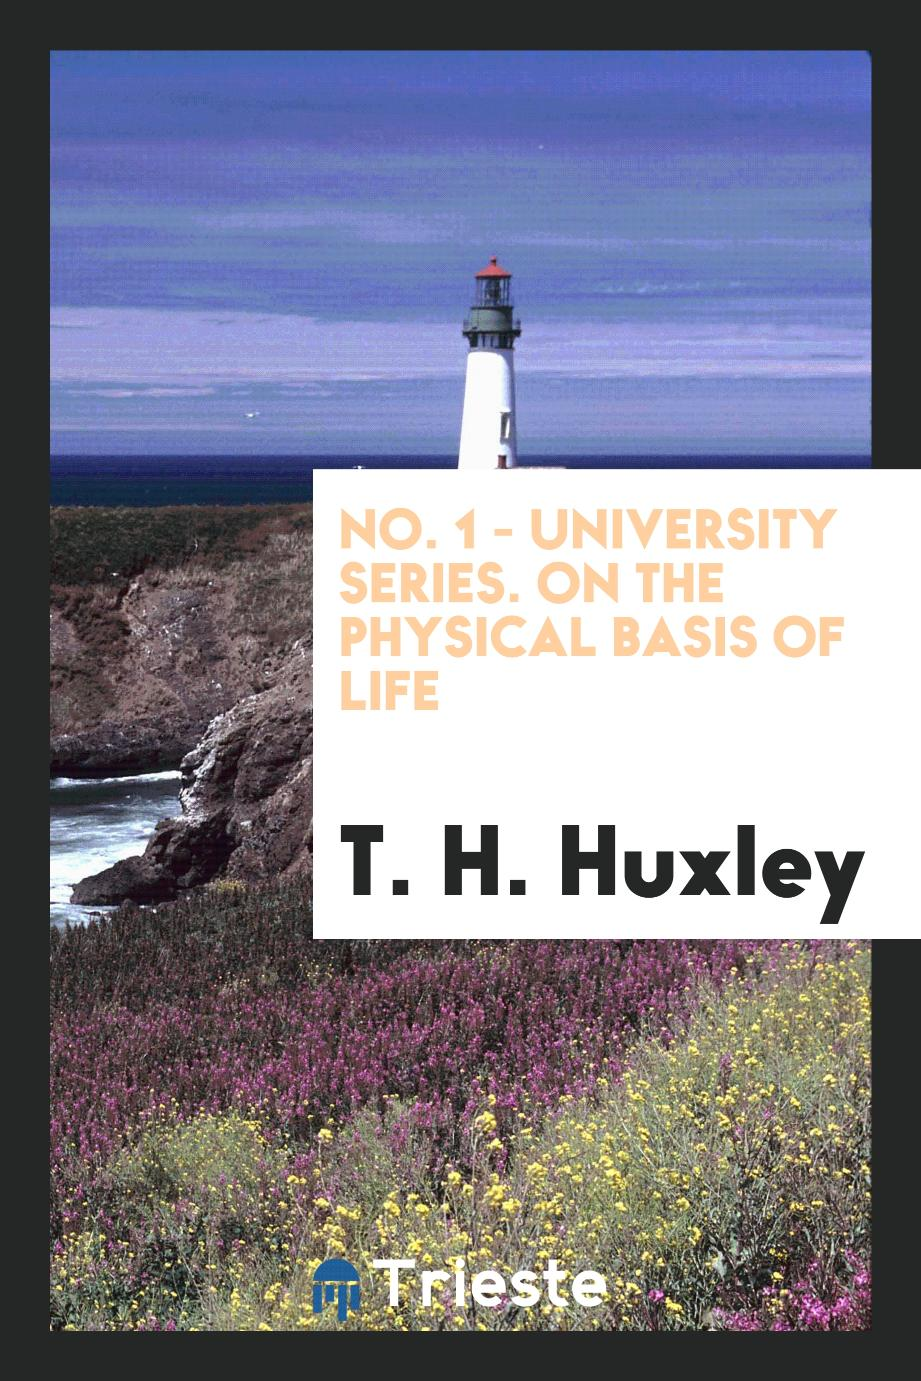 No. 1 - University Series. On the physical basis of life